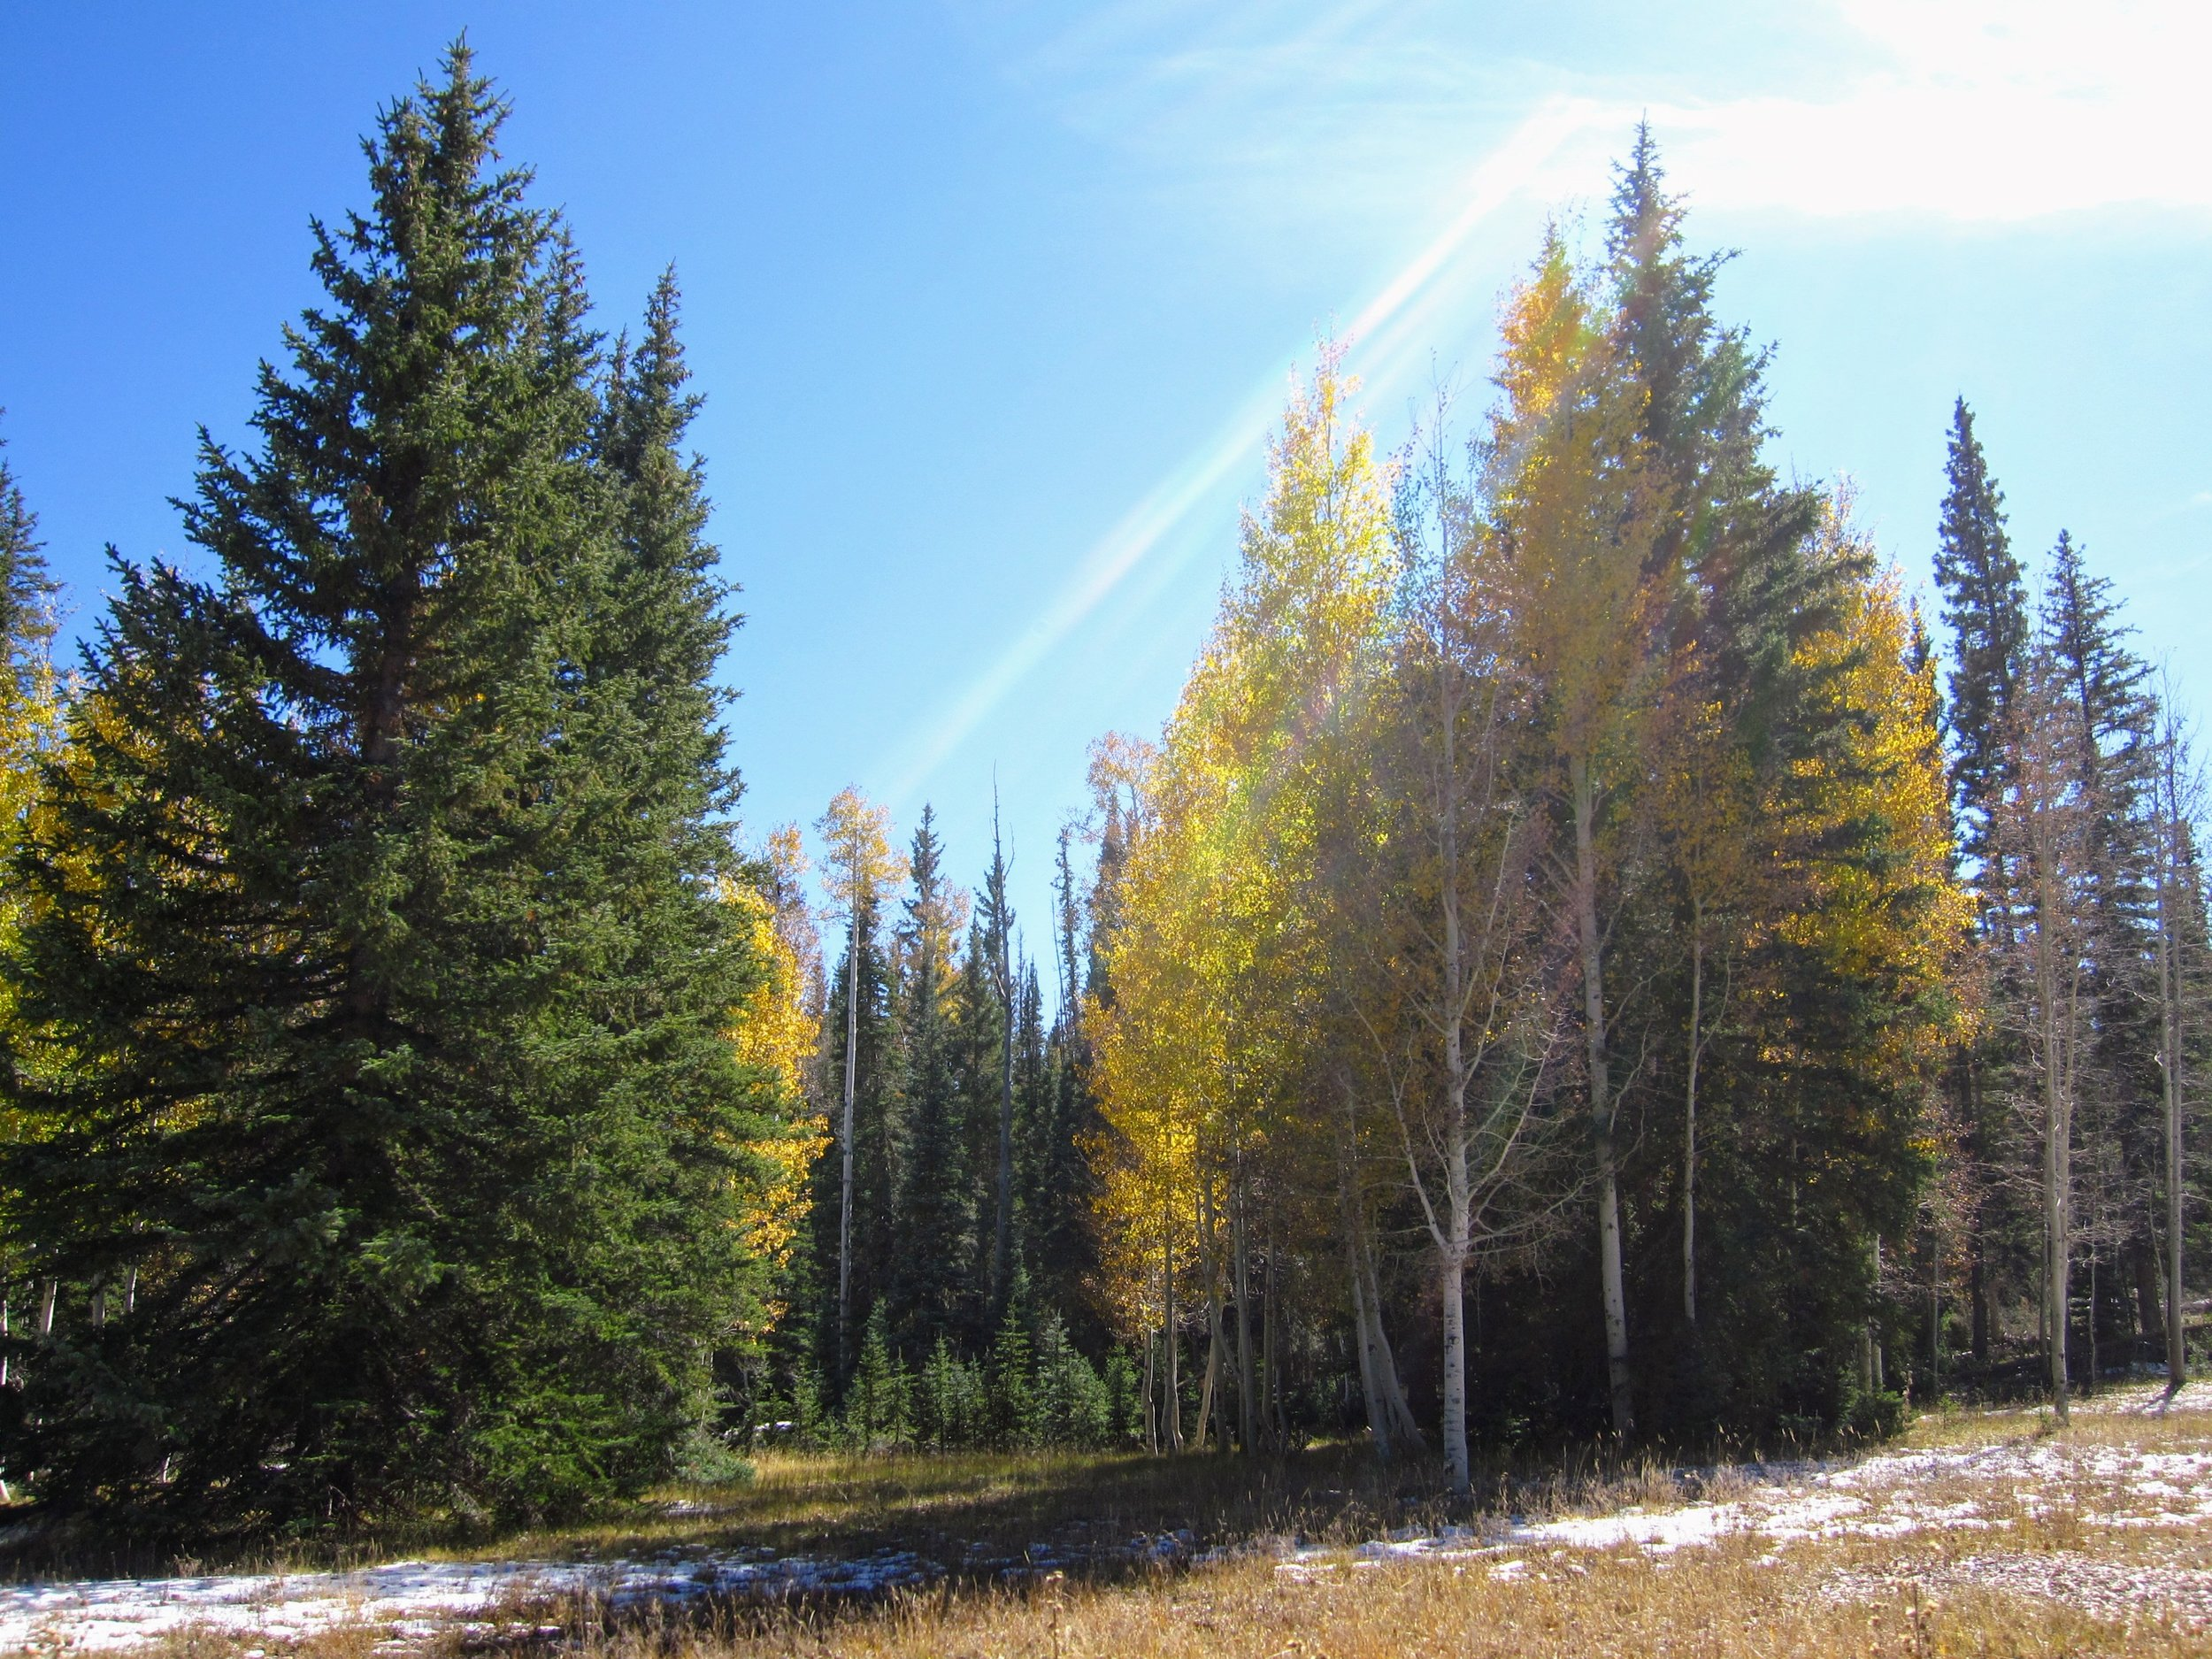 October 2011 - Yellow aspens, snow on the ground.... almost closing time for the North Rim.